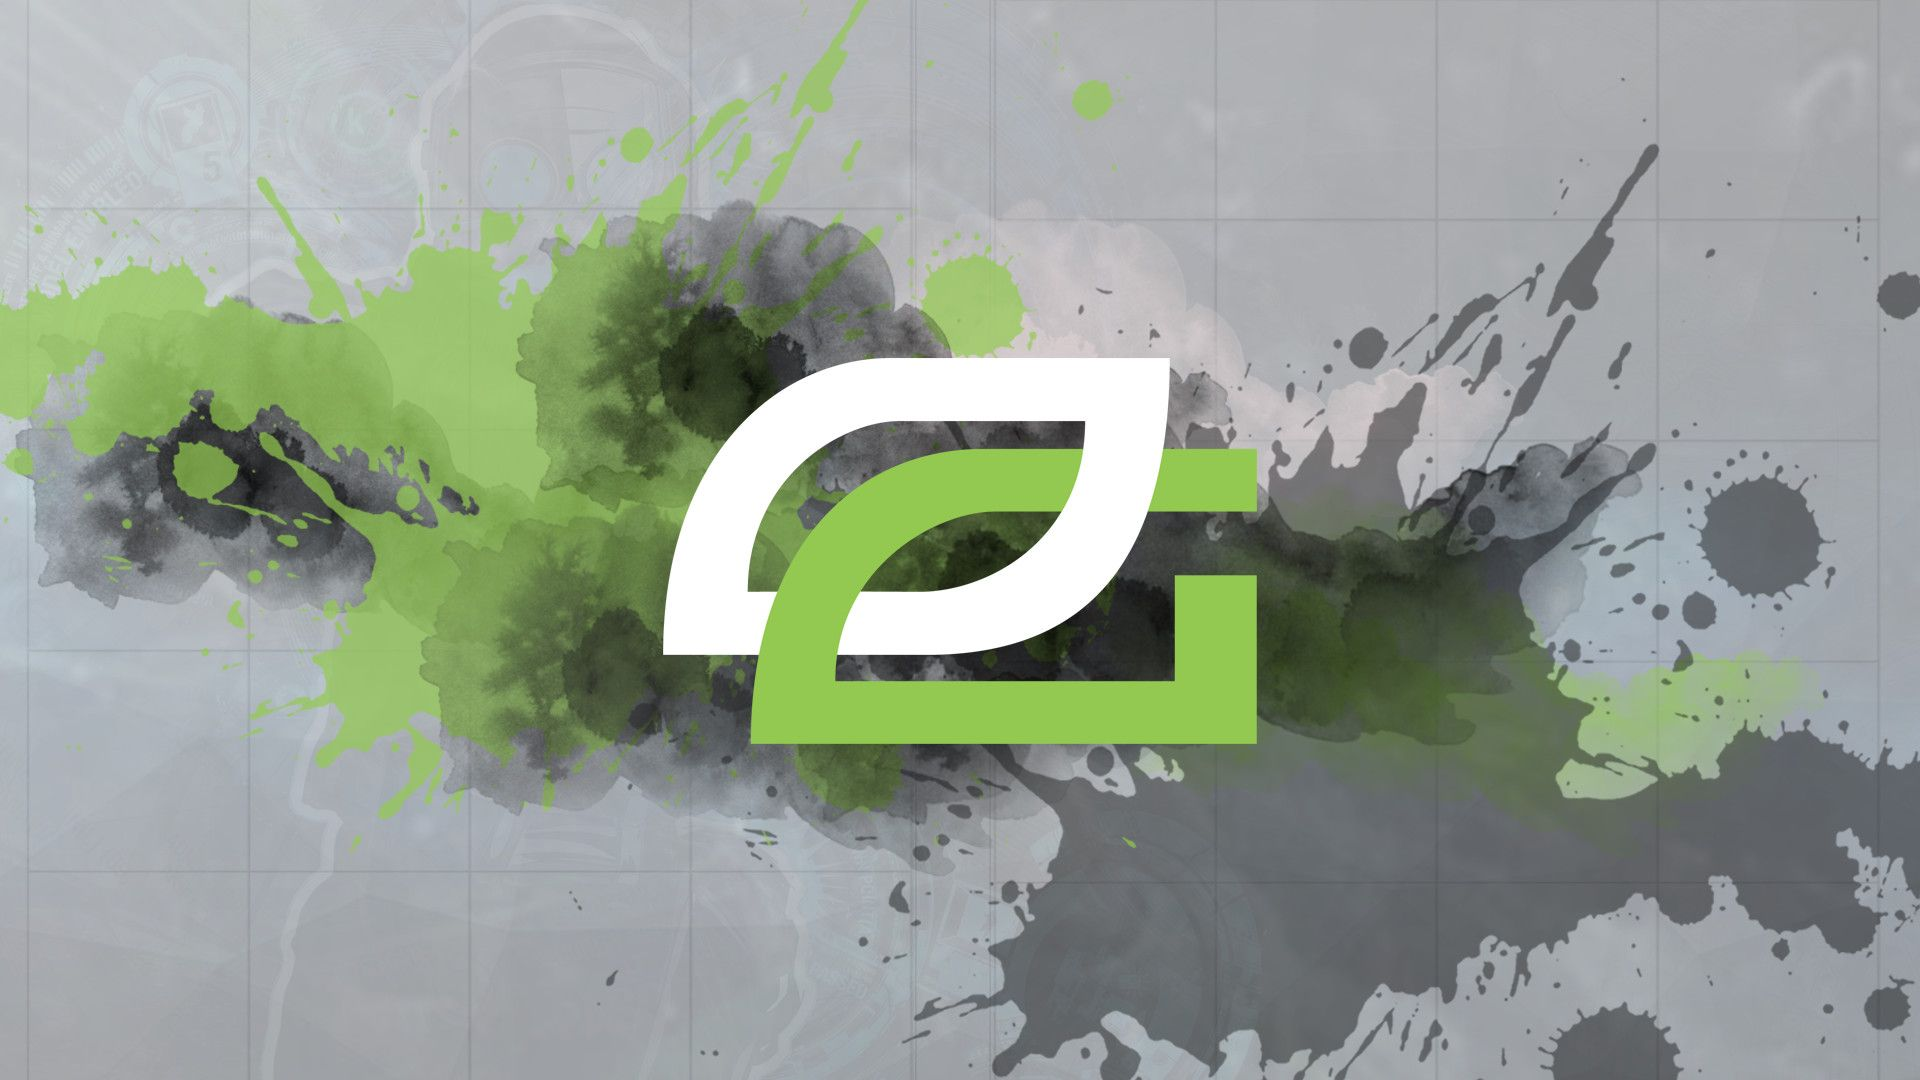 77 Optic Gaming Wallpapers On Wallpaperplay Gaming Wallpapers Optic Gaming Gaming Wallpapers Hd